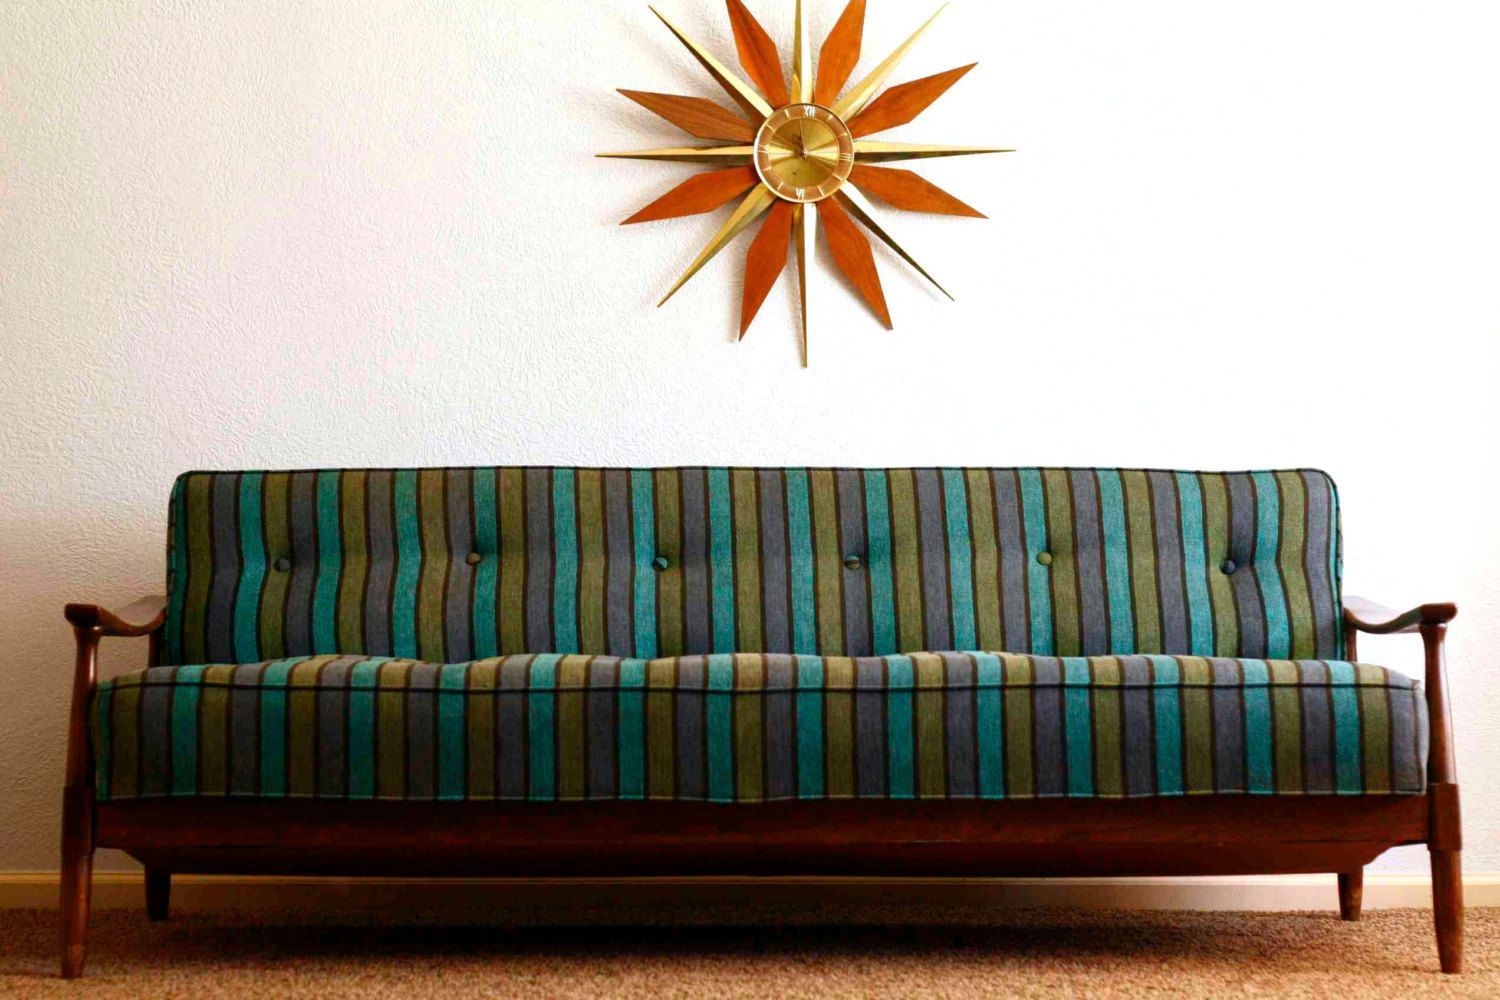 This vintage couch is so awesome mid century modern couch 1950s house couches